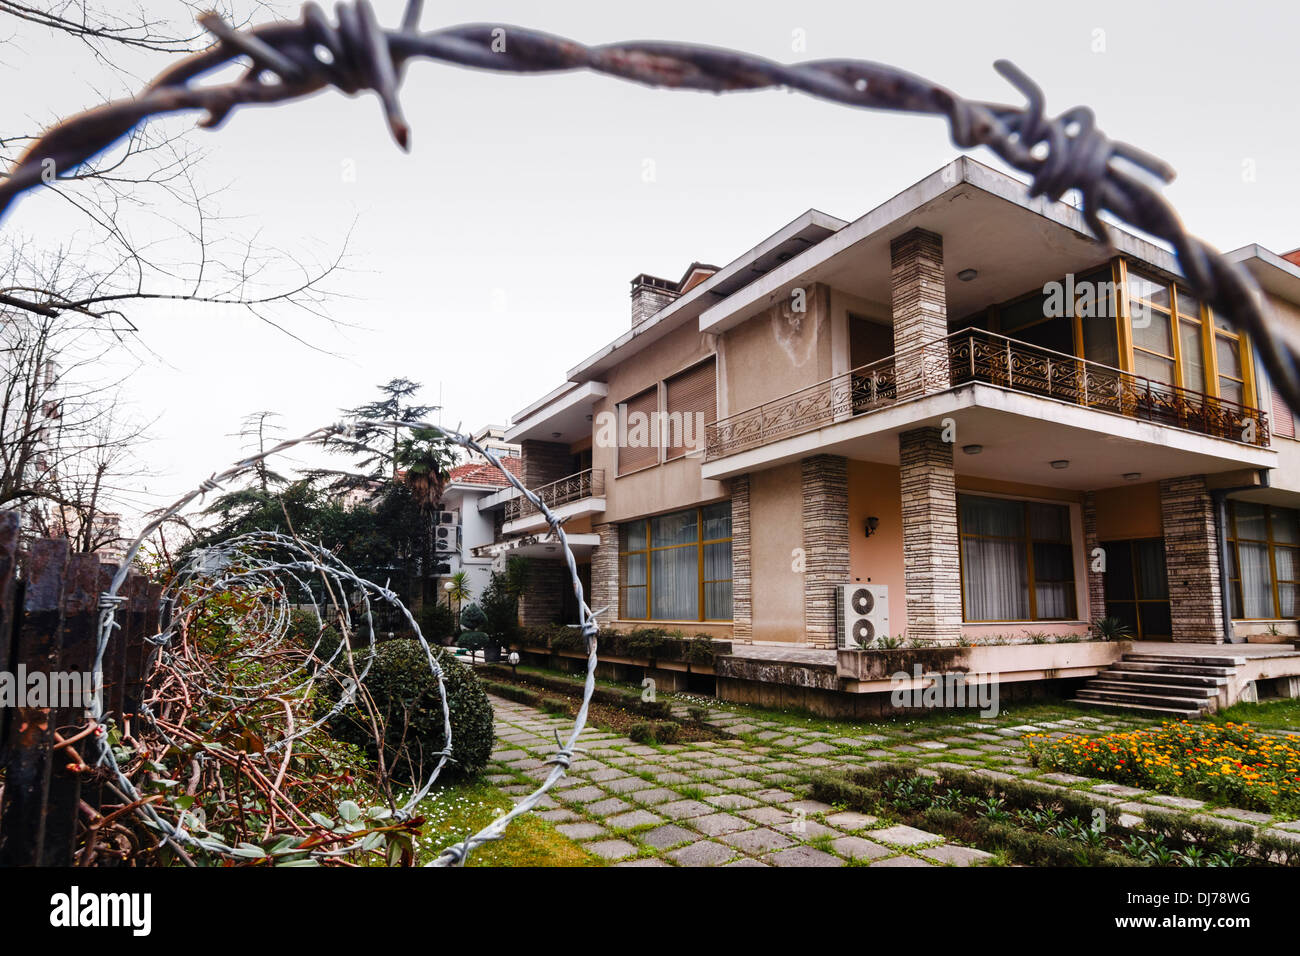 House of former dictator Enver Hoxha - Stock Image